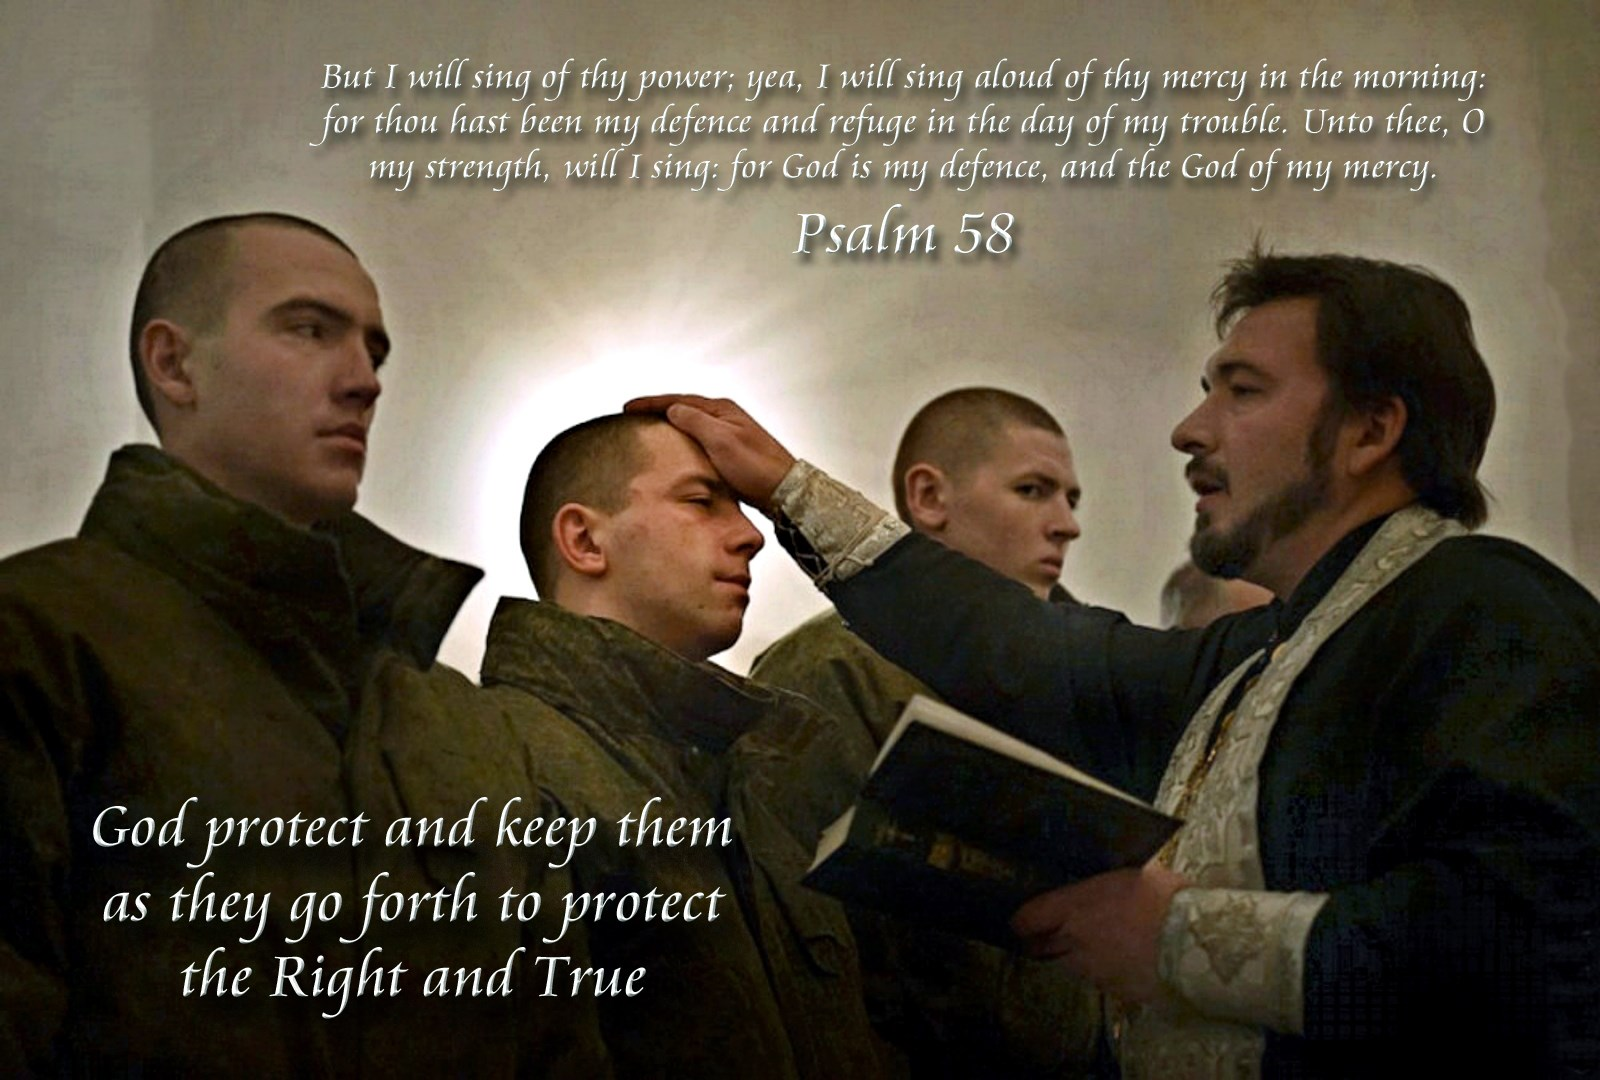 00 Psalm 58. Russian soldiers. 03.03.15